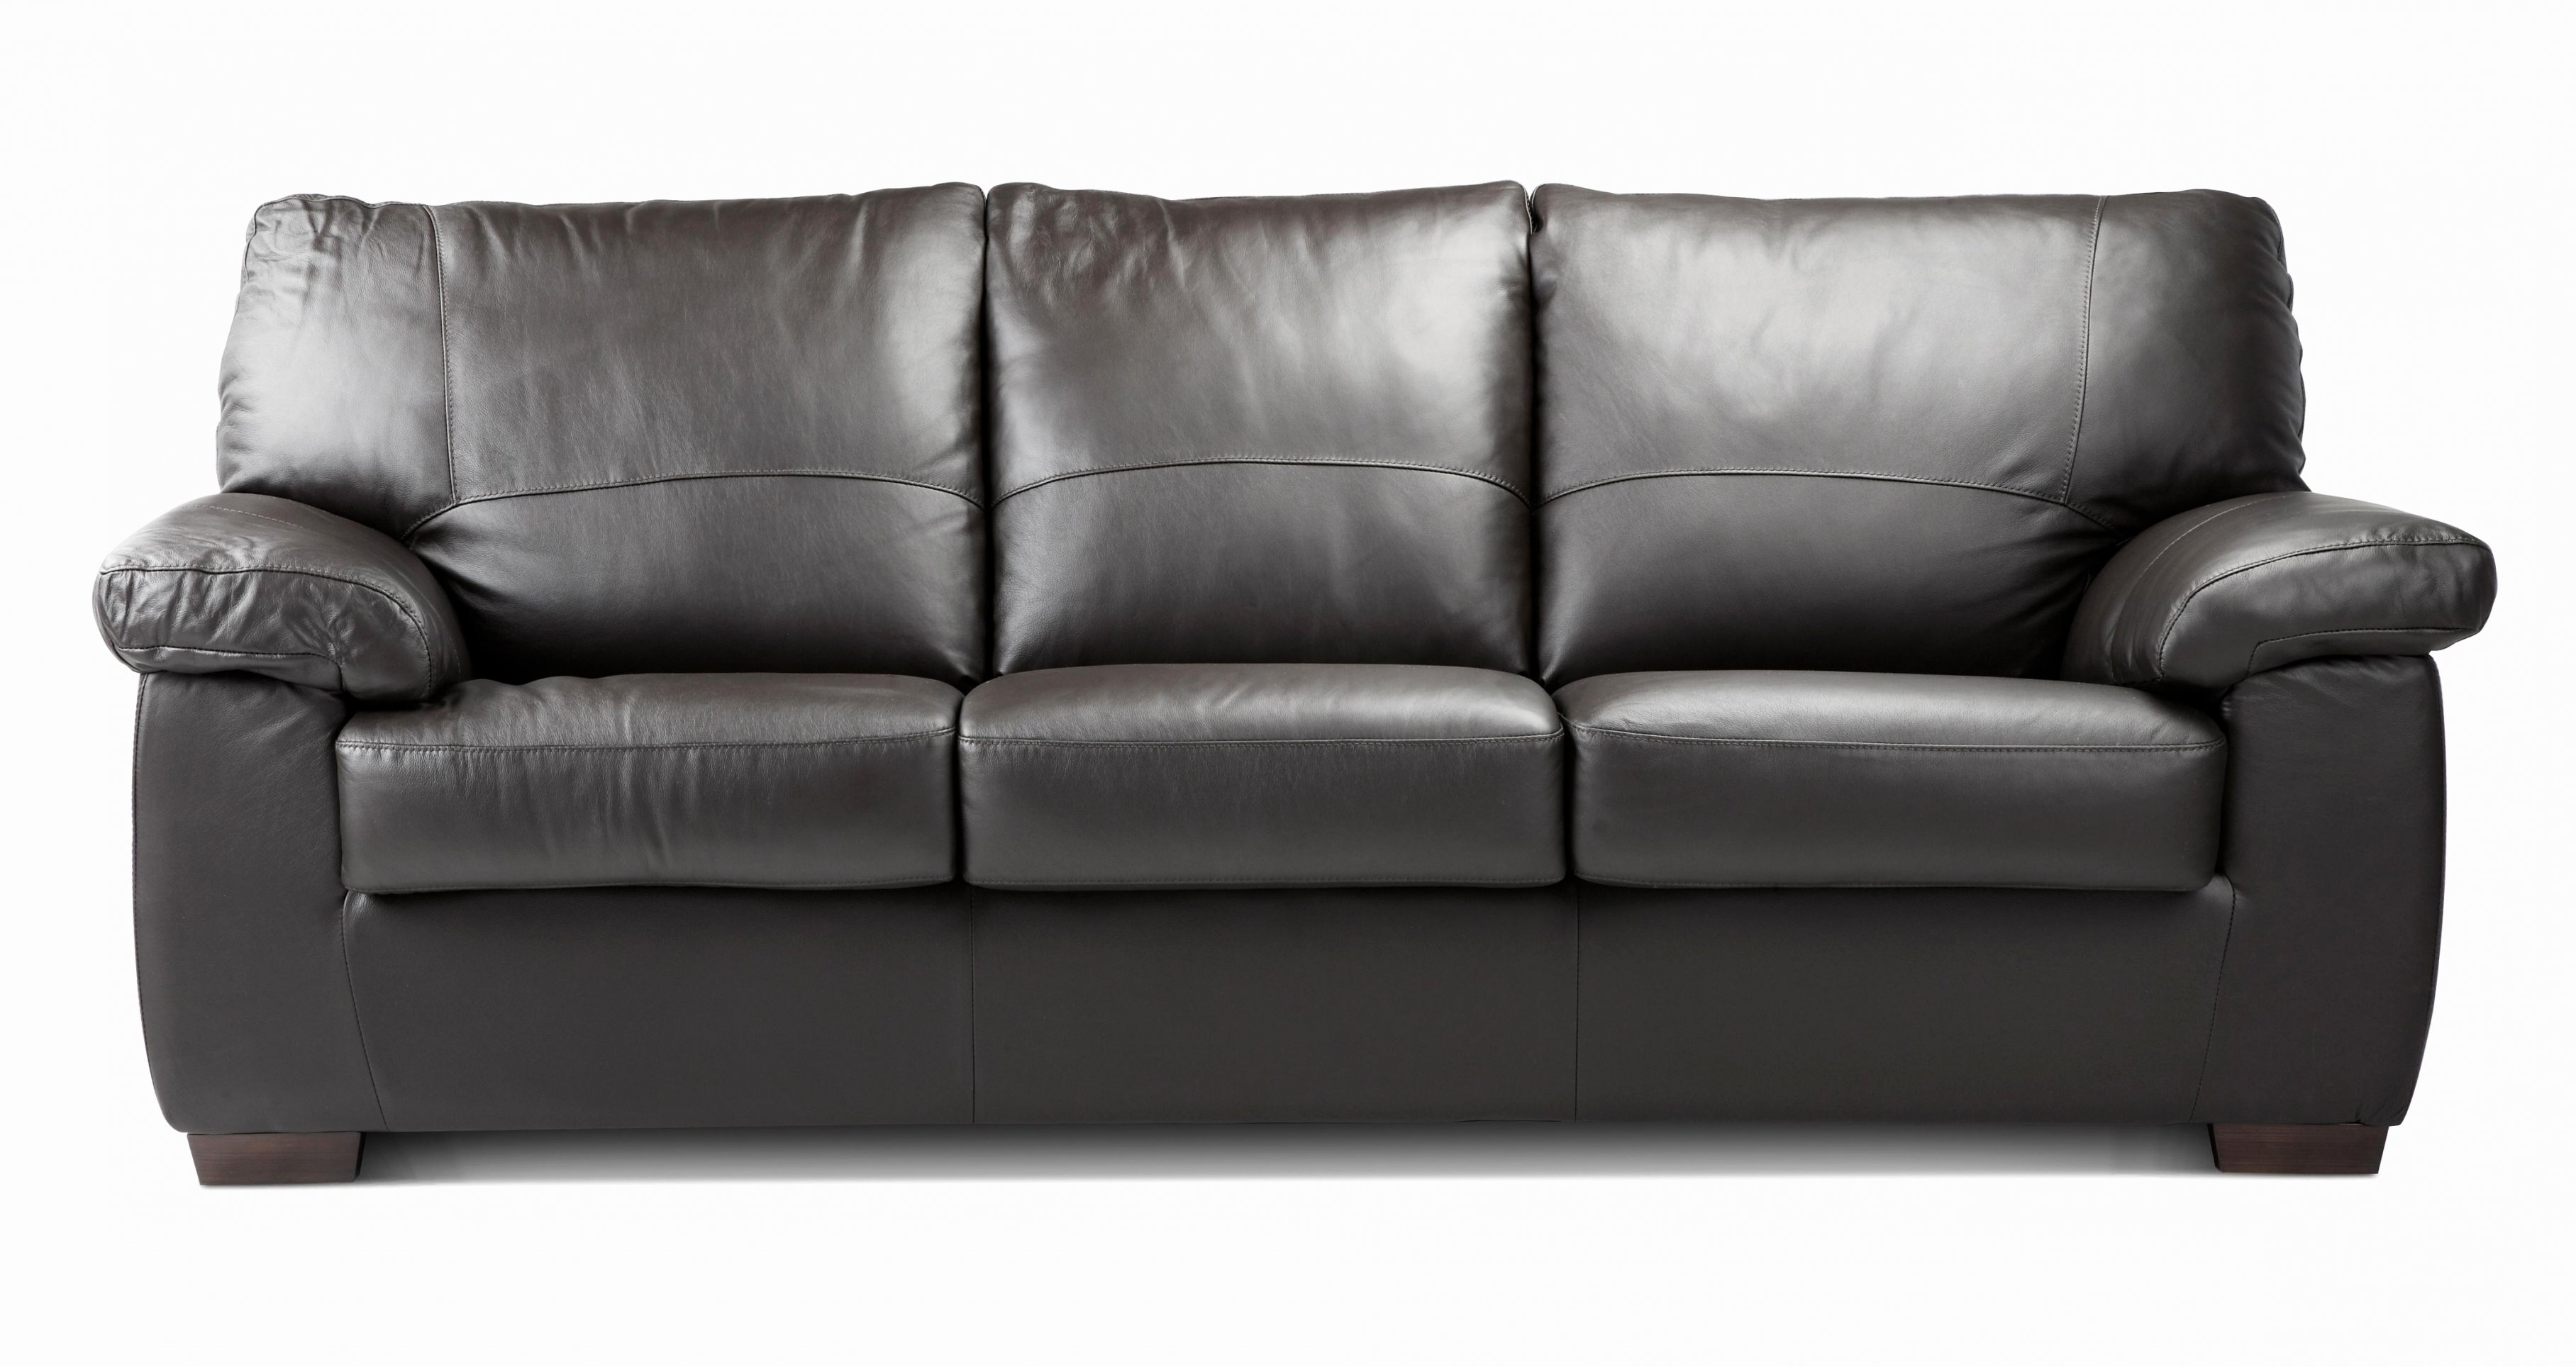 3 Seater Leather Sofas Within Most Recent 3 Seat Black Leather Sofa (View 7 of 15)